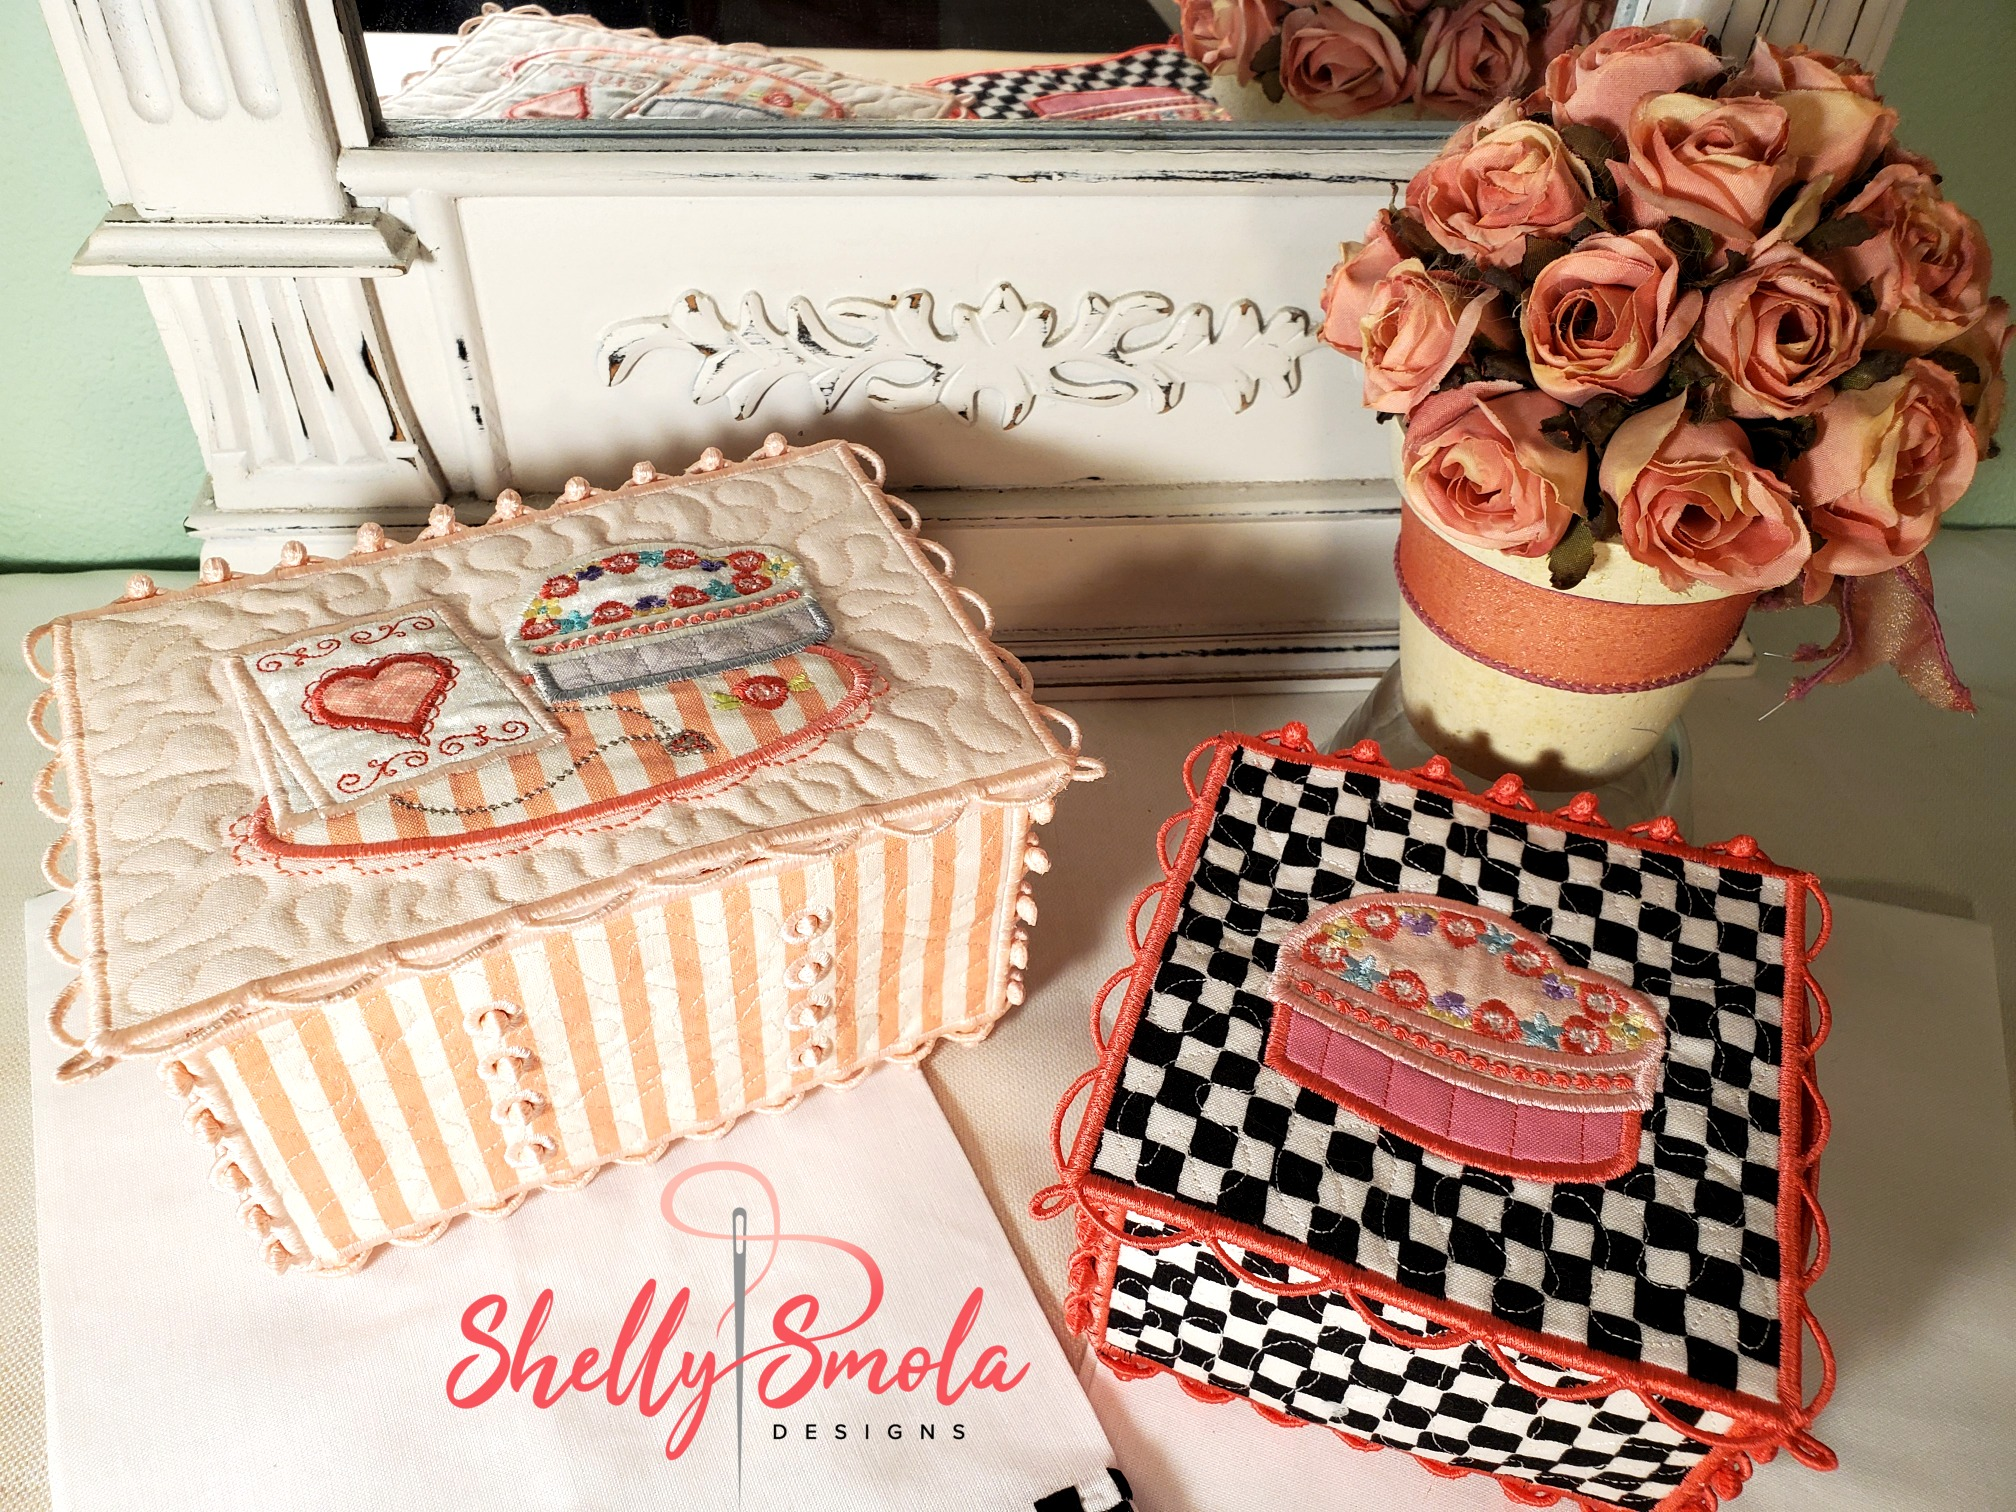 Sweetheart Trinket Boxes by Shelly Smola